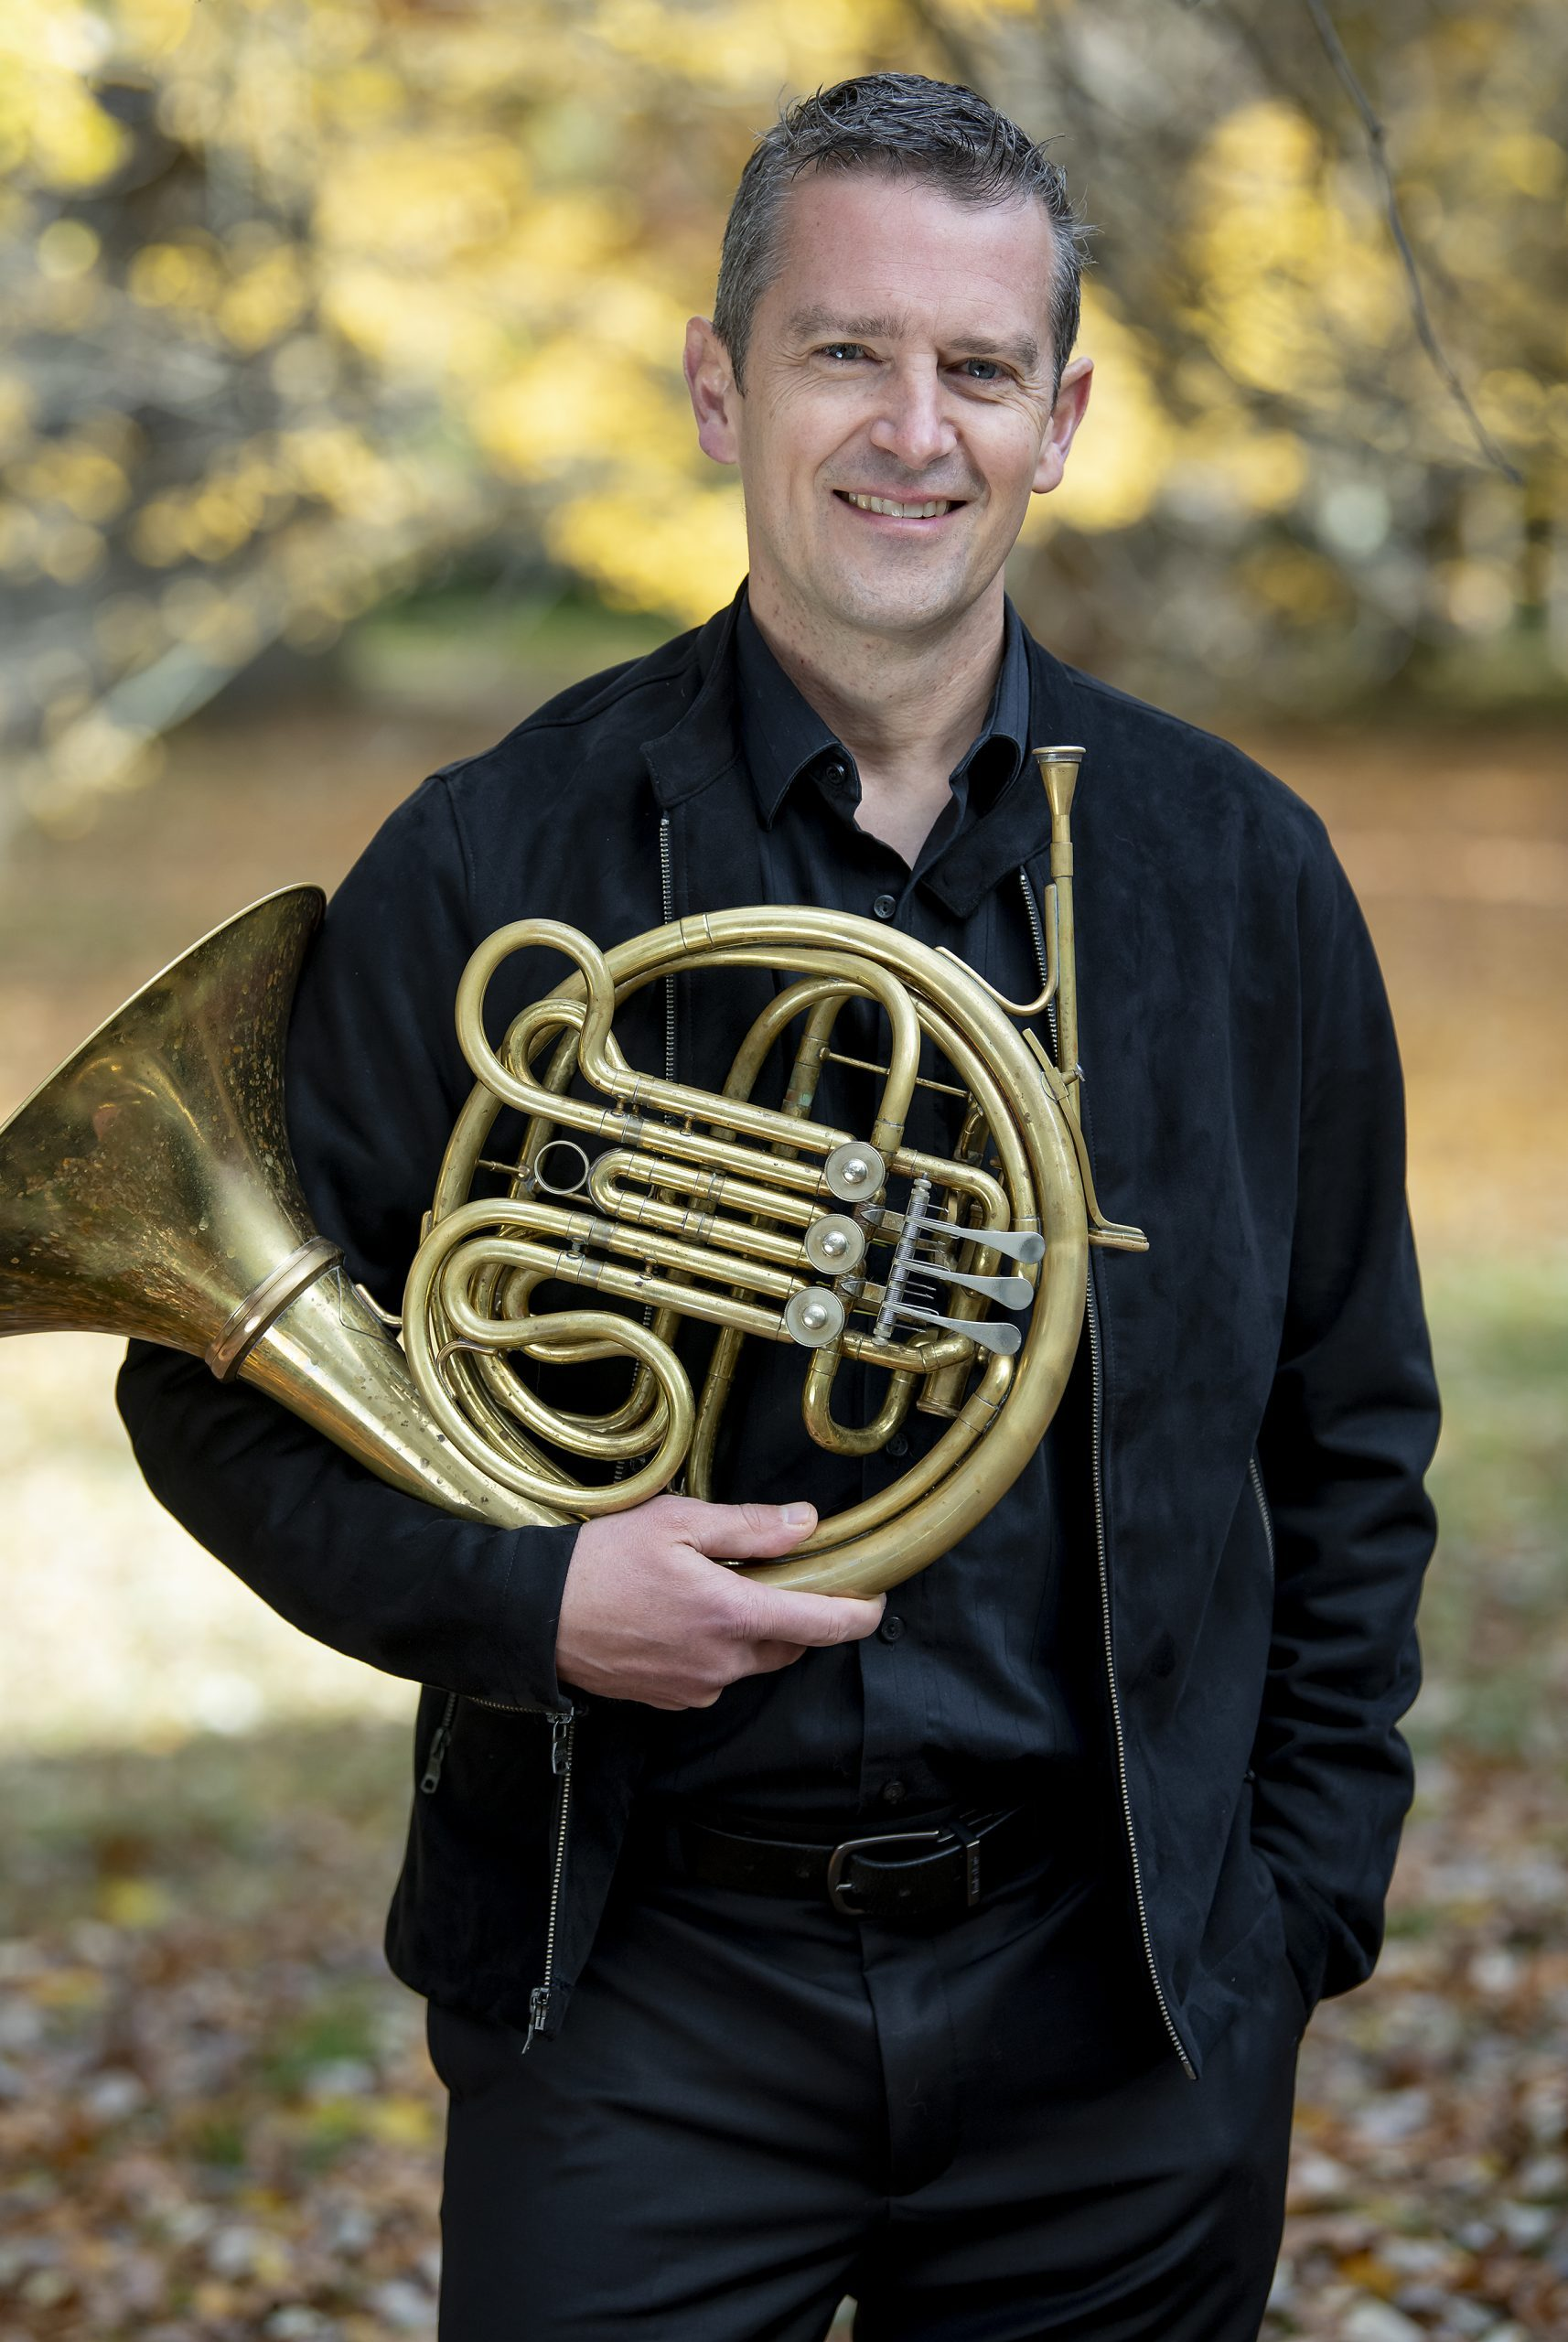 Adam Unsworth holding his horn in his right hand, smiling, in front of a blurred background of fall leaves.